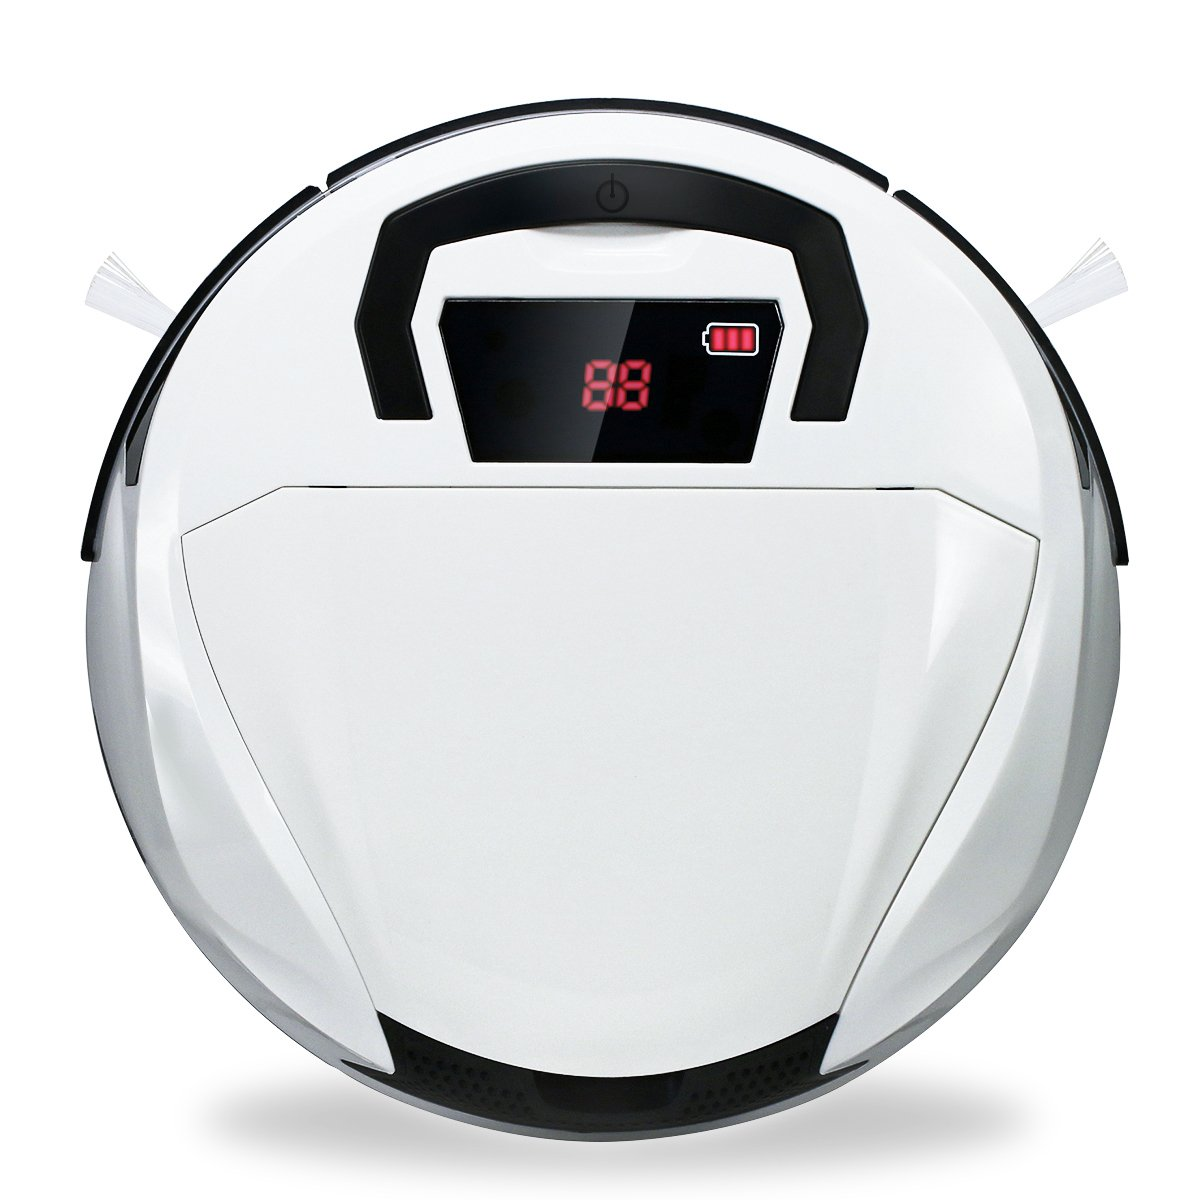 Vacuum Cleaner Robot, FINE DRAGON Automatic Robotic Vacuum Cleaner High Suction Cleaning for Hard Floor and Thin Carpets (White B)